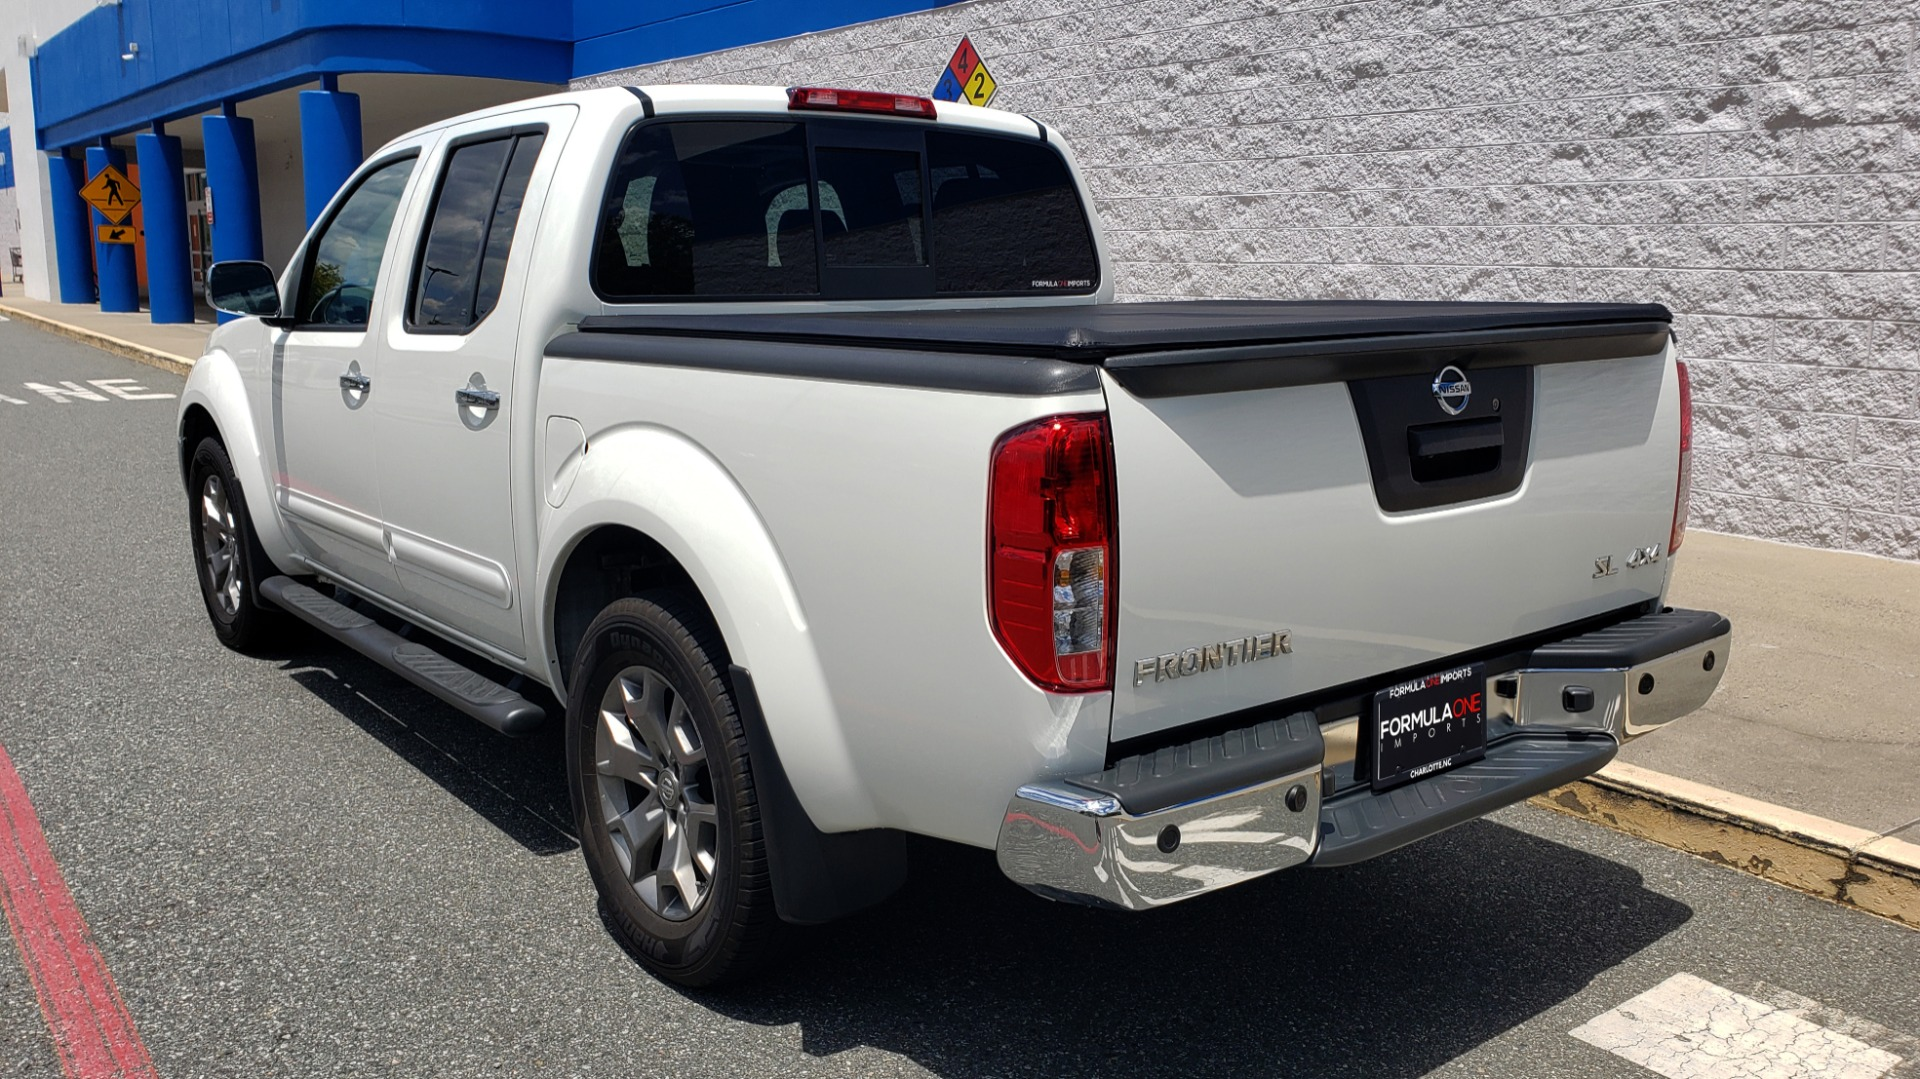 Used 2019 Nissan FRONTIER SL CREW CAB / 4X4 / NAV / SUNROOF / ROCKFORD FOSGATE / LOADED for sale $31,495 at Formula Imports in Charlotte NC 28227 8